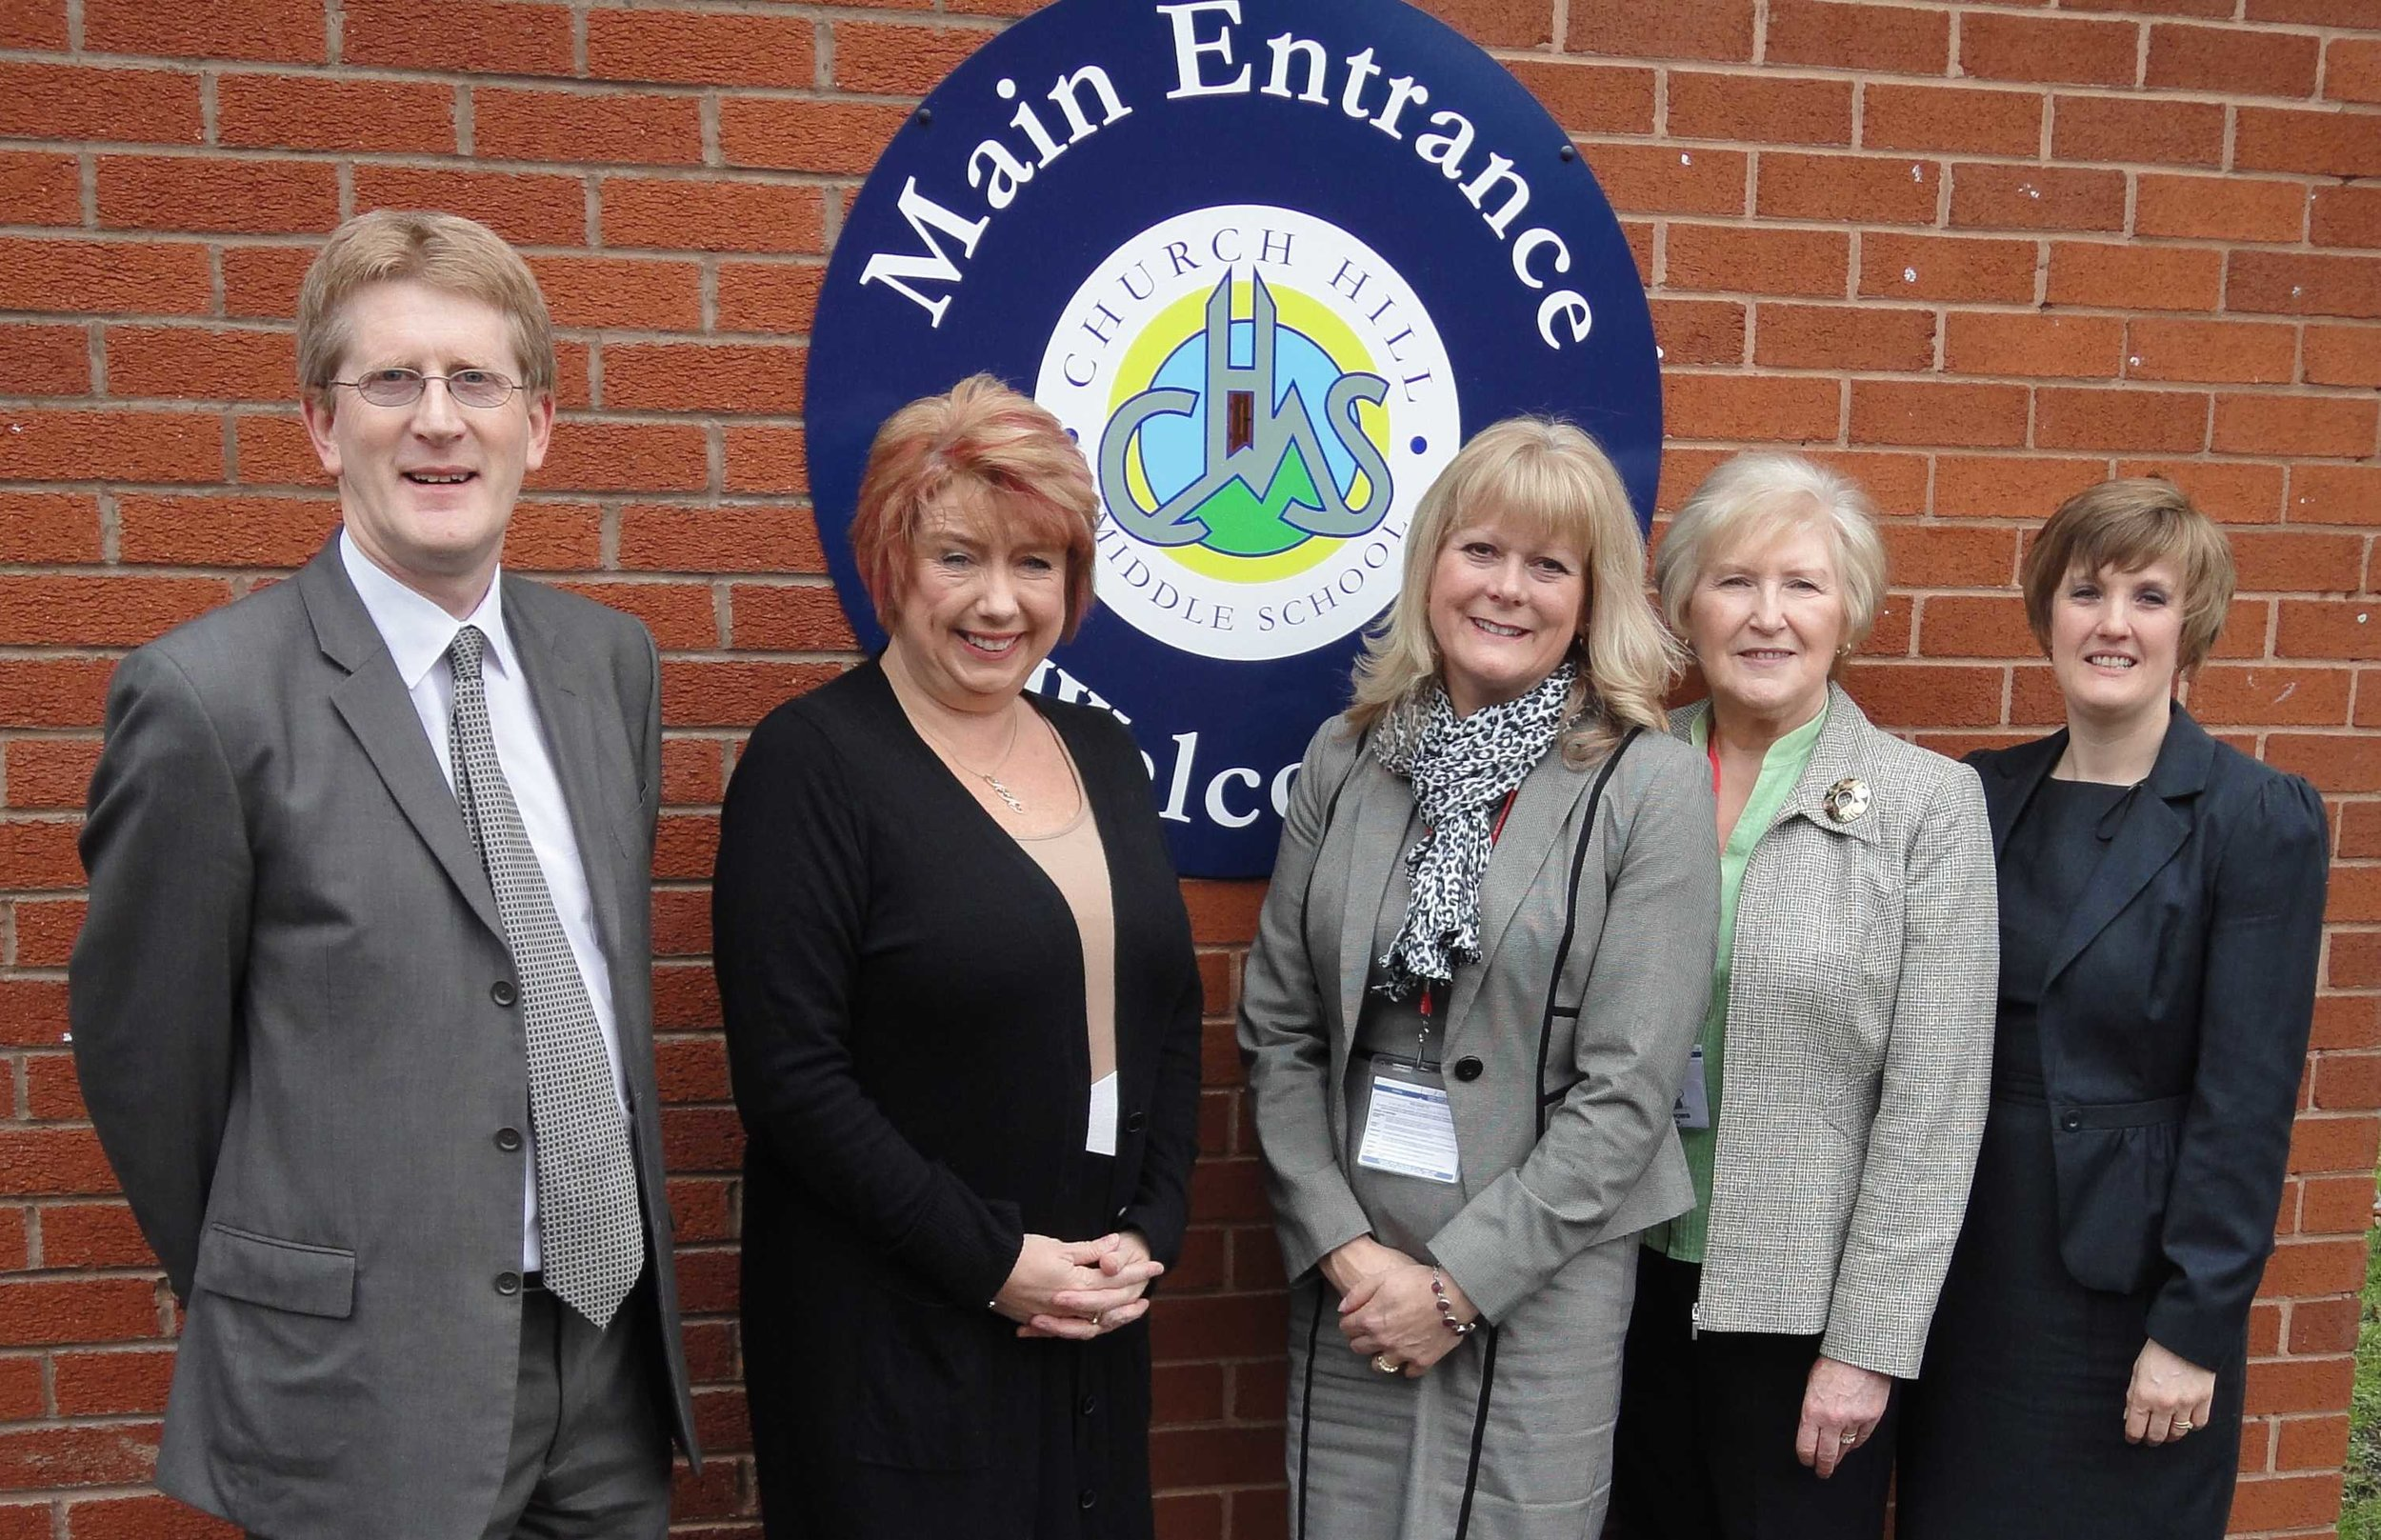 Karen Lumley MP Visit with Headmaster, Andrea Maddox MBE CEO Mentorlink with Elaine a Past Trustee and Volunteer.jpg